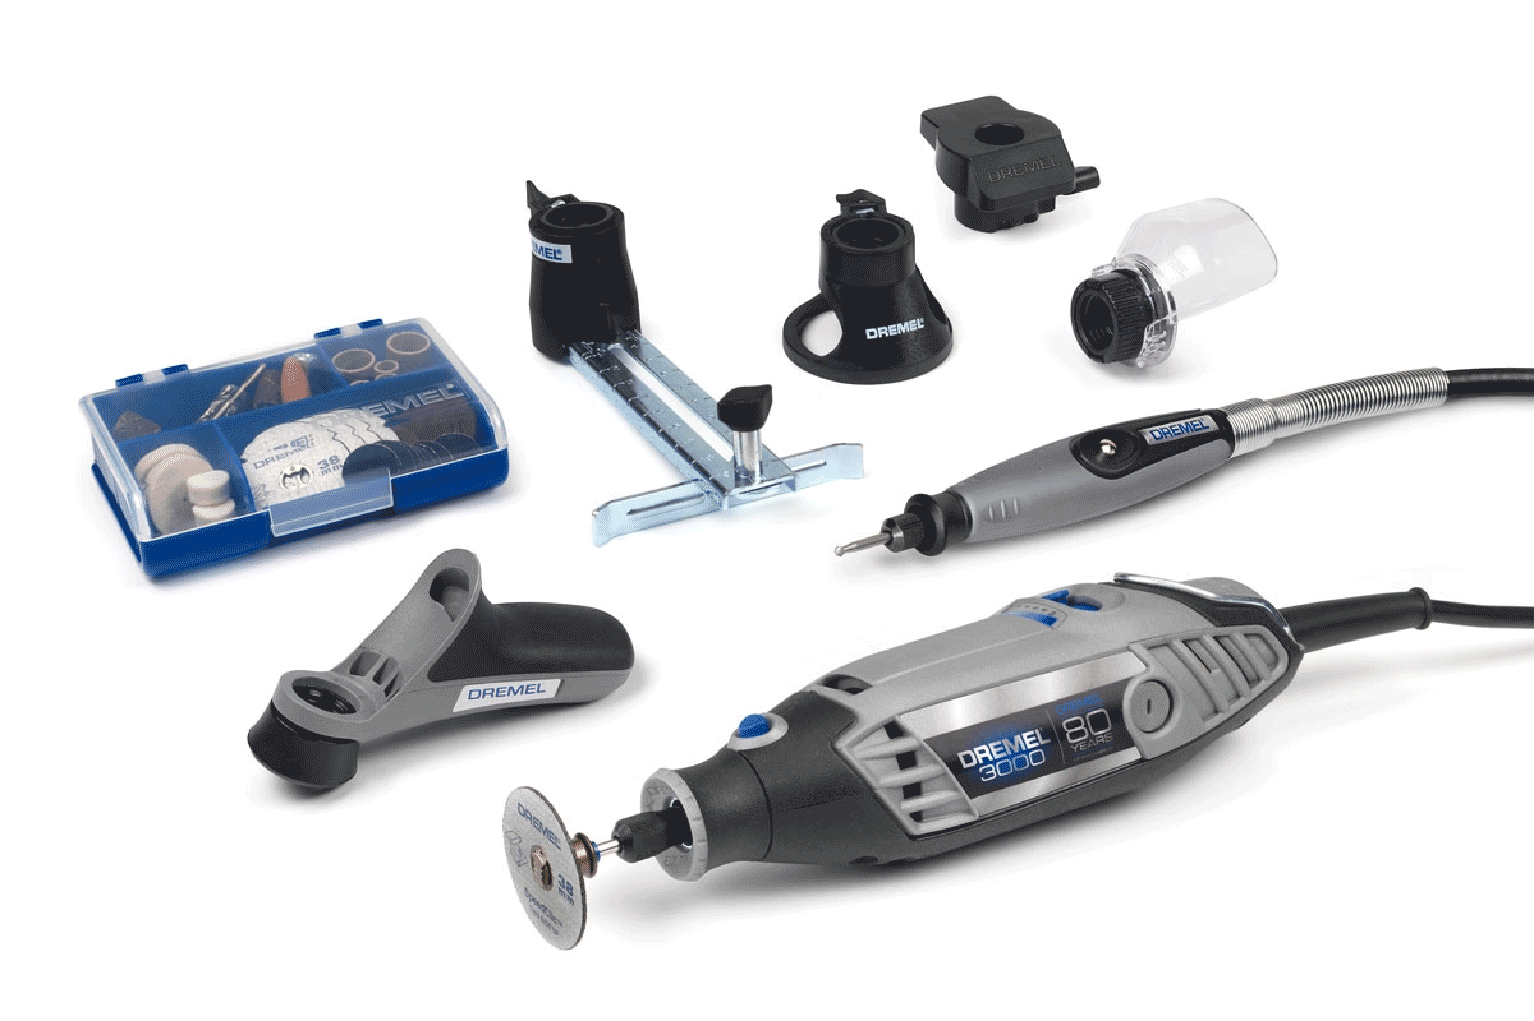 dremel 3000 multi tool 80 year anniversary limited. Black Bedroom Furniture Sets. Home Design Ideas